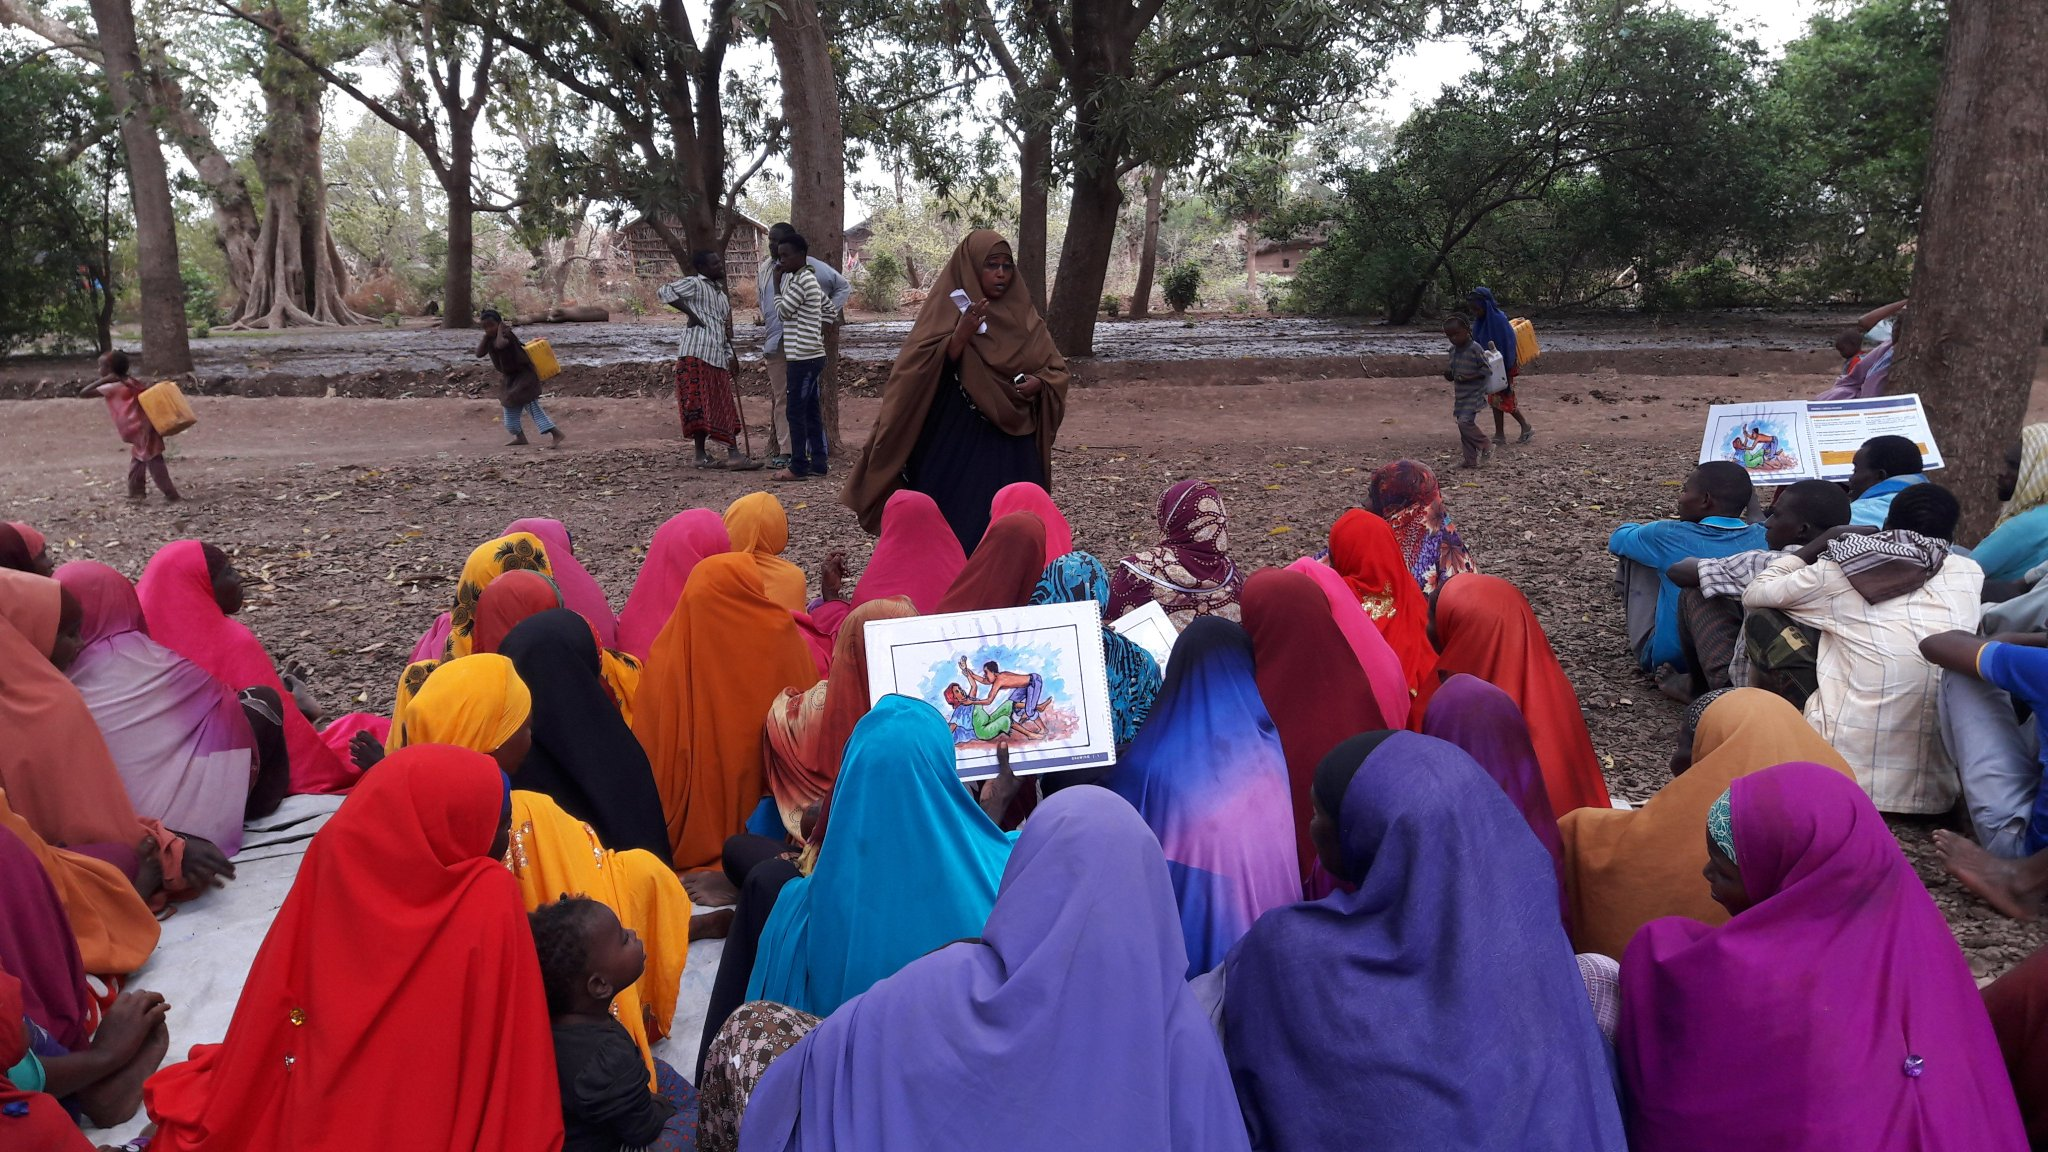 In 2017, Women and Child Care Organization (WOCCA) reached 7900 people with protection activities, including Gender Based Violence Awareness raising. The work was possible thanks to the $  299,894 received from @SHF_Somalia. #WithSomalia https://t.co/E93kAWa1NR